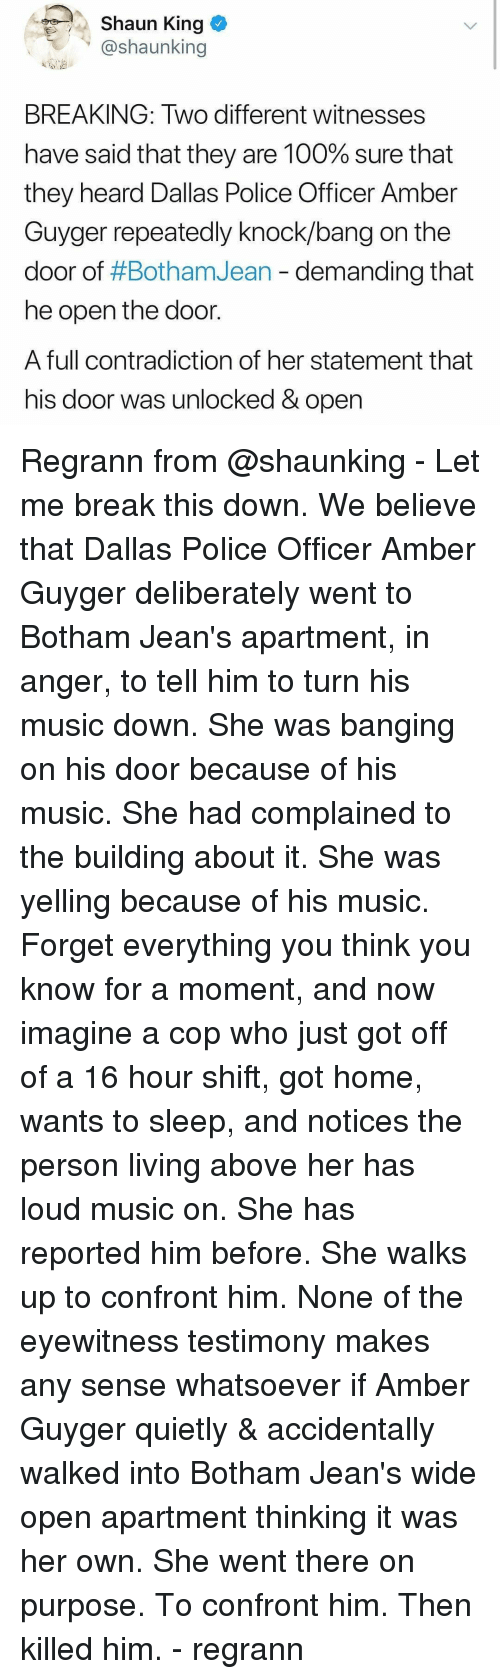 Anaconda, Memes, and Music: Shaun King  @shaunking  BREAKING: Two different witnesses  have said that they are 100% sure that  they heard Dallas Police Officer Amber  Guyger repeatedly knock/bang on the  door of #Botham/ean-demanding that  he open the door.  A full contradiction of her statement that  his door was unlocked & open Regrann from @shaunking - Let me break this down. We believe that Dallas Police Officer Amber Guyger deliberately went to Botham Jean's apartment, in anger, to tell him to turn his music down. She was banging on his door because of his music. She had complained to the building about it. She was yelling because of his music. Forget everything you think you know for a moment, and now imagine a cop who just got off of a 16 hour shift, got home, wants to sleep, and notices the person living above her has loud music on. She has reported him before. She walks up to confront him. None of the eyewitness testimony makes any sense whatsoever if Amber Guyger quietly & accidentally walked into Botham Jean's wide open apartment thinking it was her own. She went there on purpose. To confront him. Then killed him. - regrann